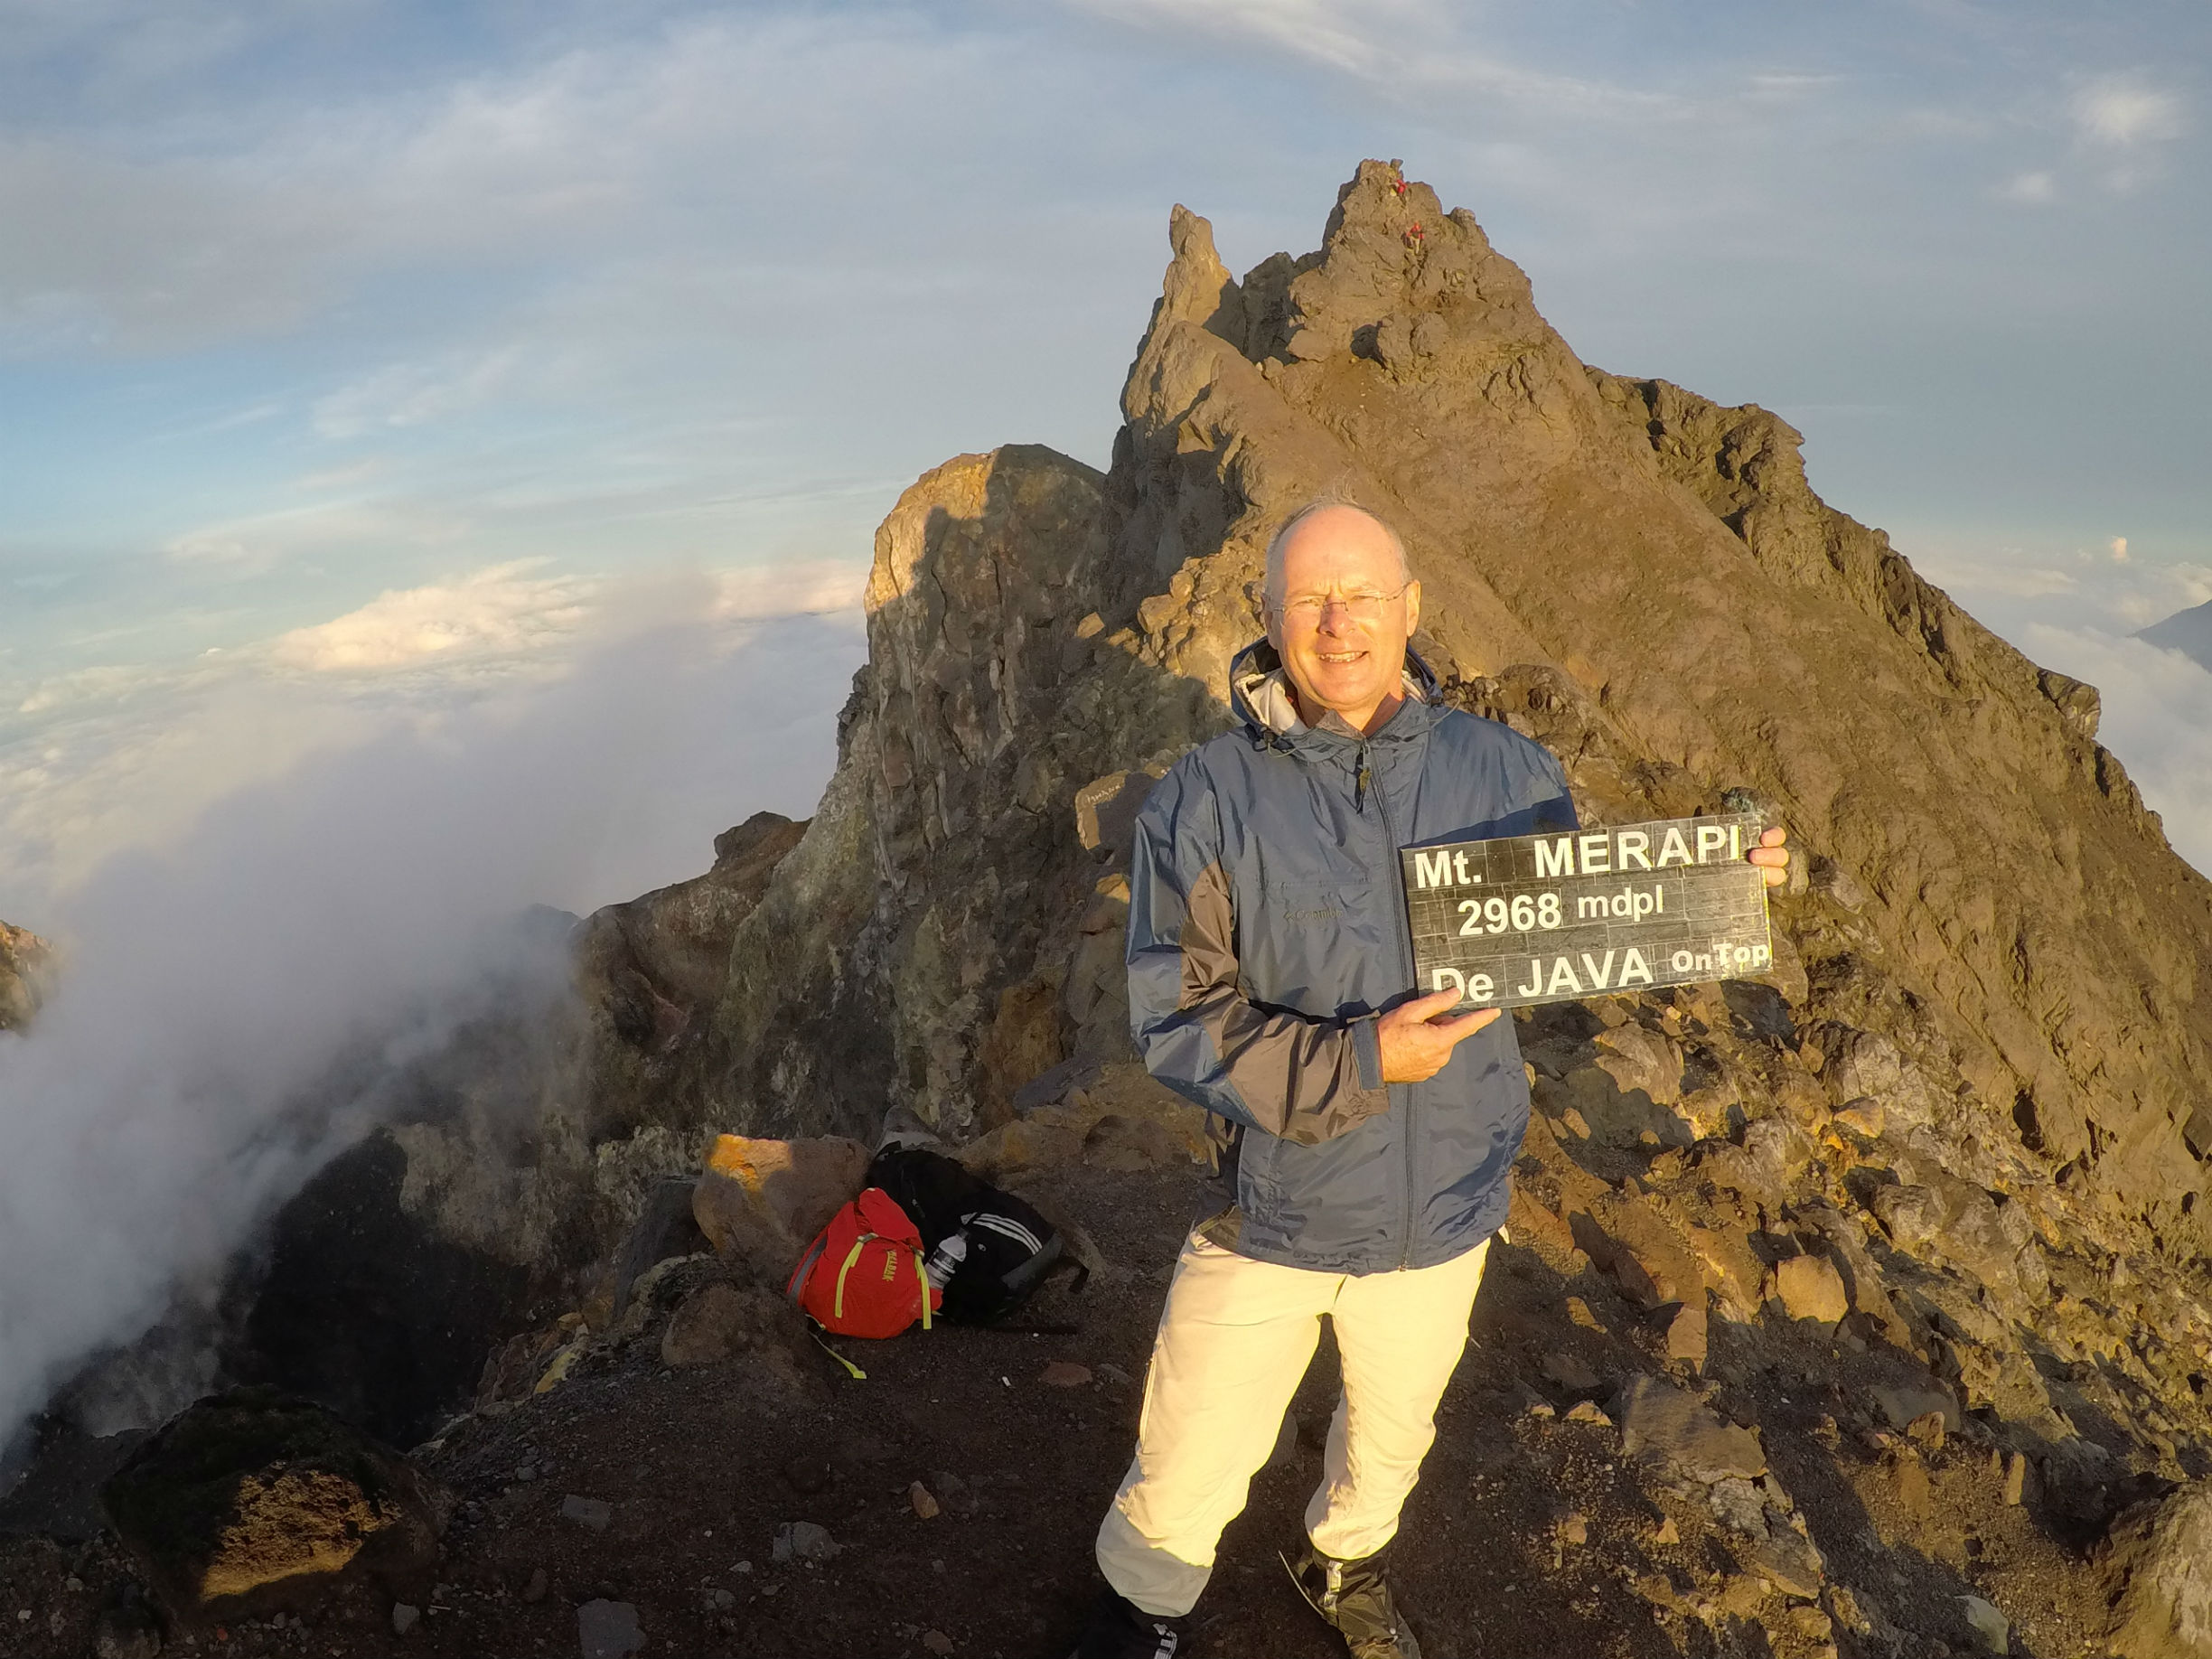 Frank reaching the summit of the Merapi volcano in central Java, Indonesia